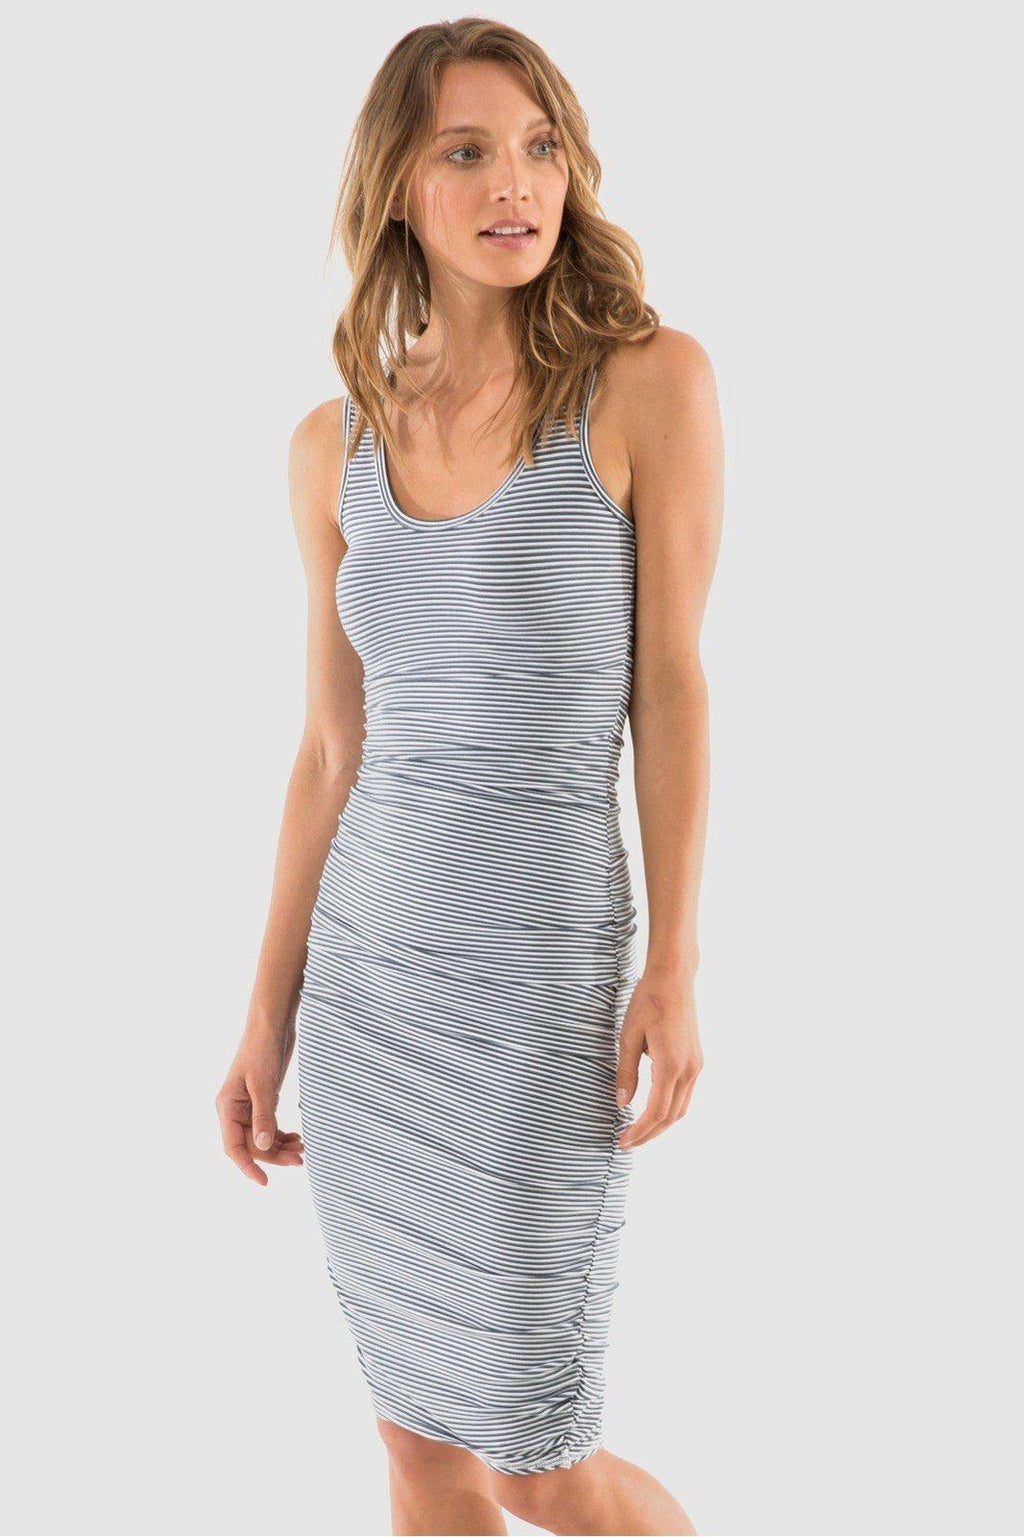 Ruched Bamboo Tank Dress - Navy + White Stripe - Bamboo Body | Buy Online at Weekends